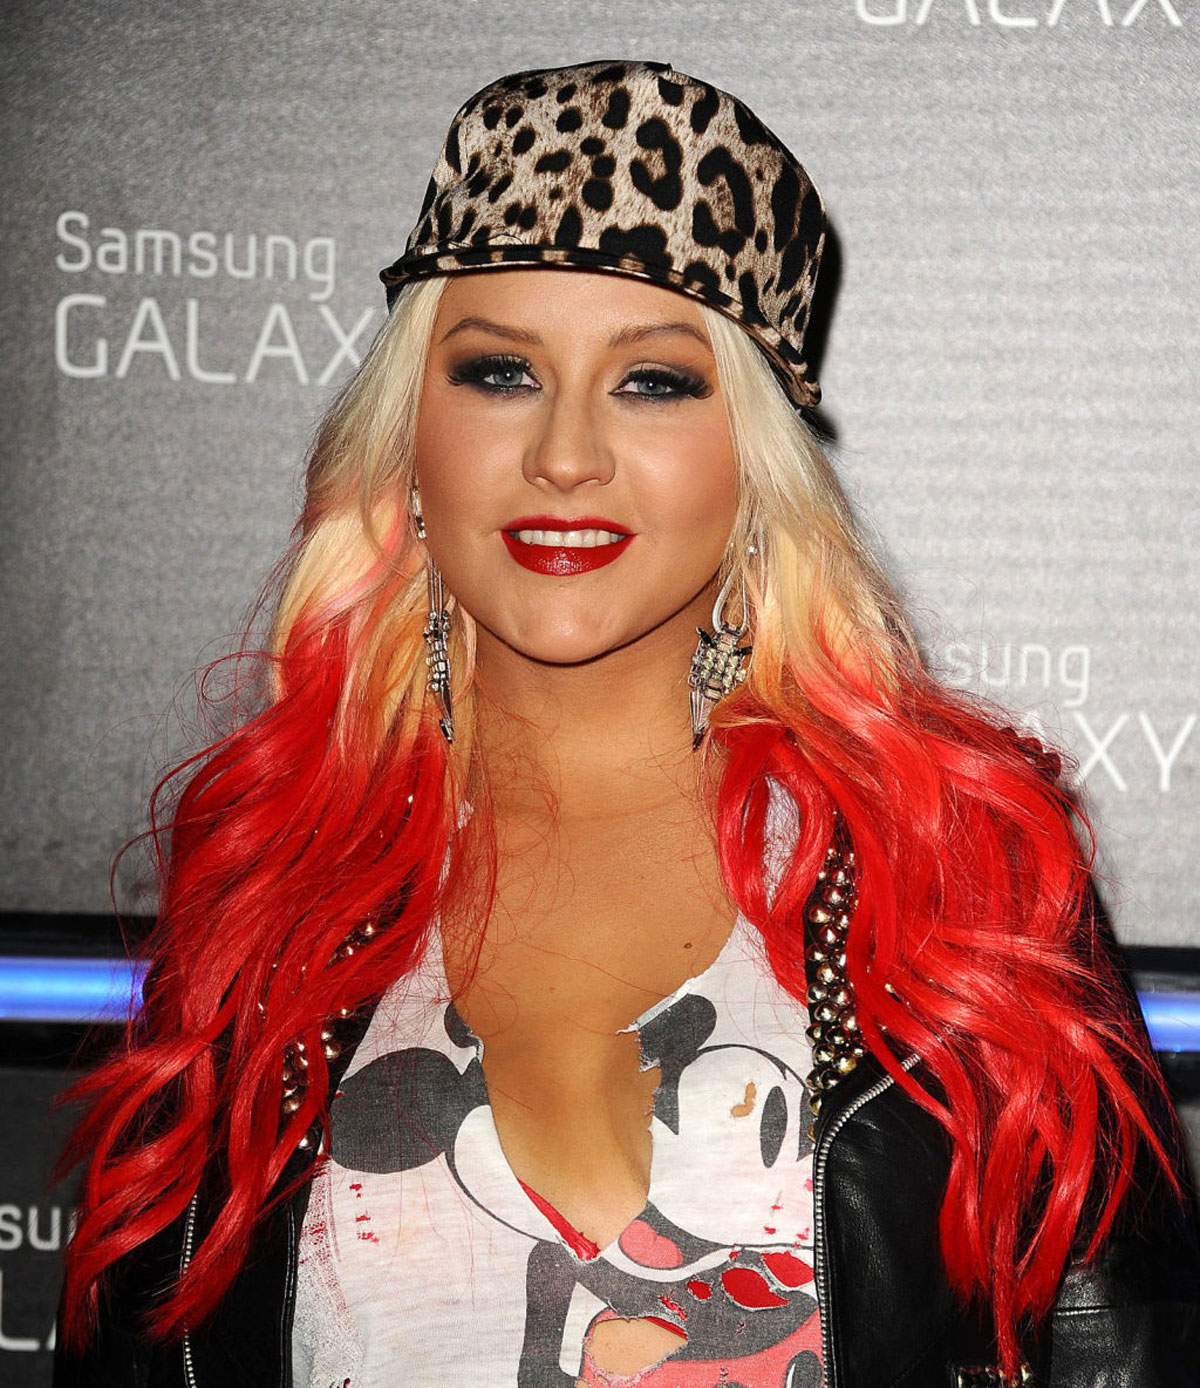 CHRISTINA AGUILERA at Samsung Galaxy Note II Launch in Beverly Hills Christina Aguilera